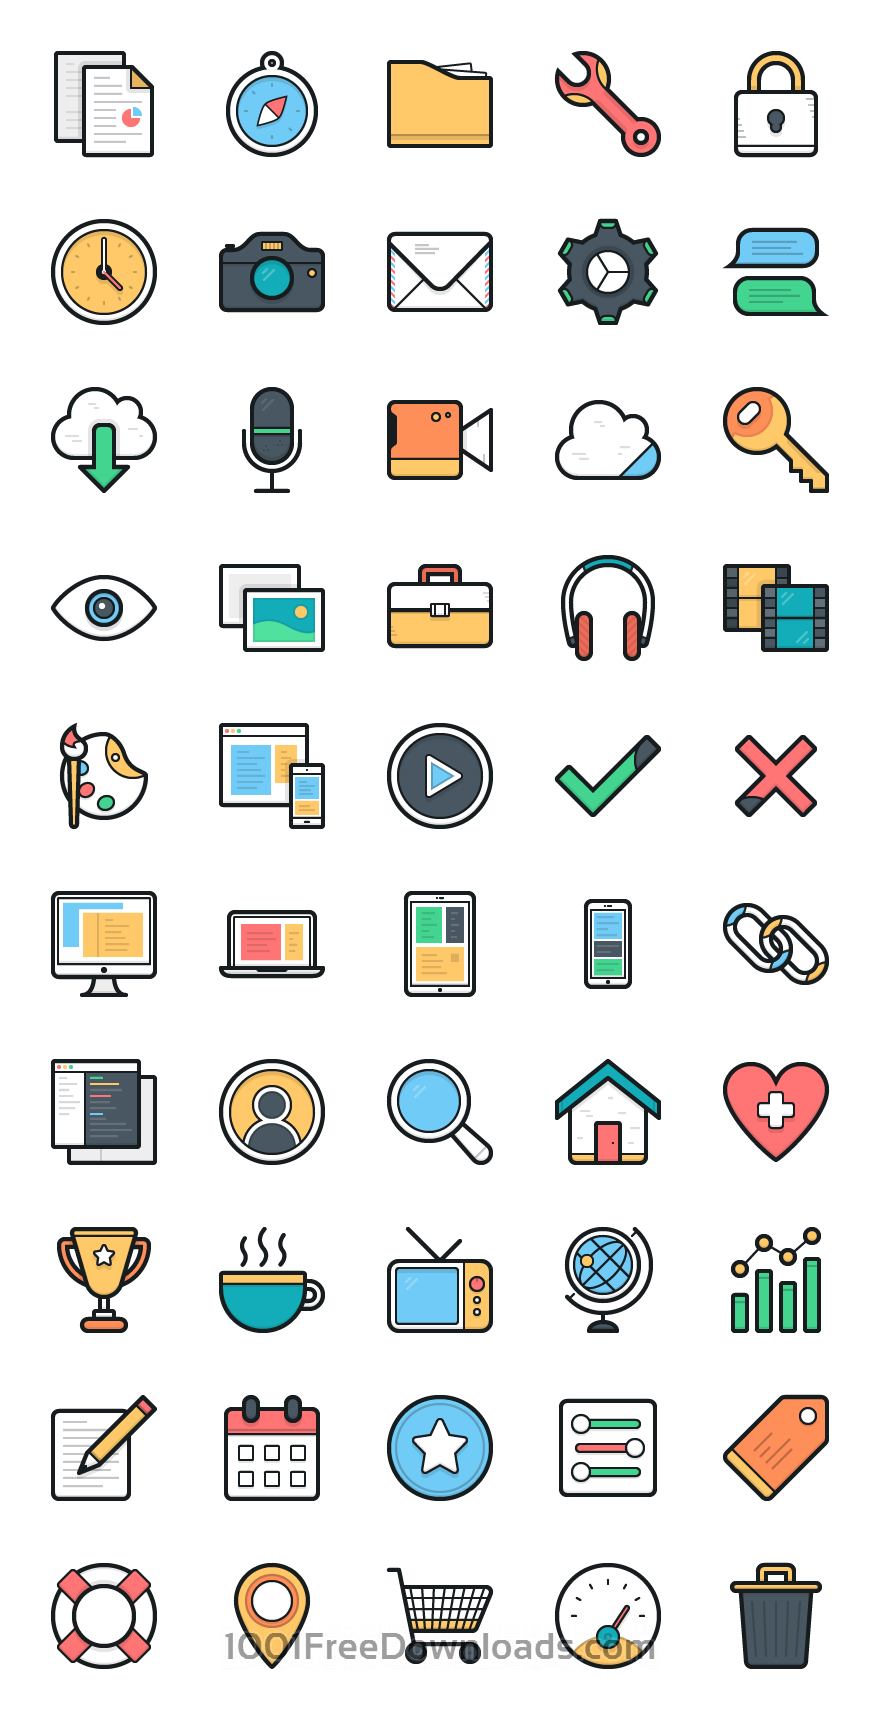 869d6f90d Free Vectors: Lulu Icons - Set 1 | various Icons personal bussines cards